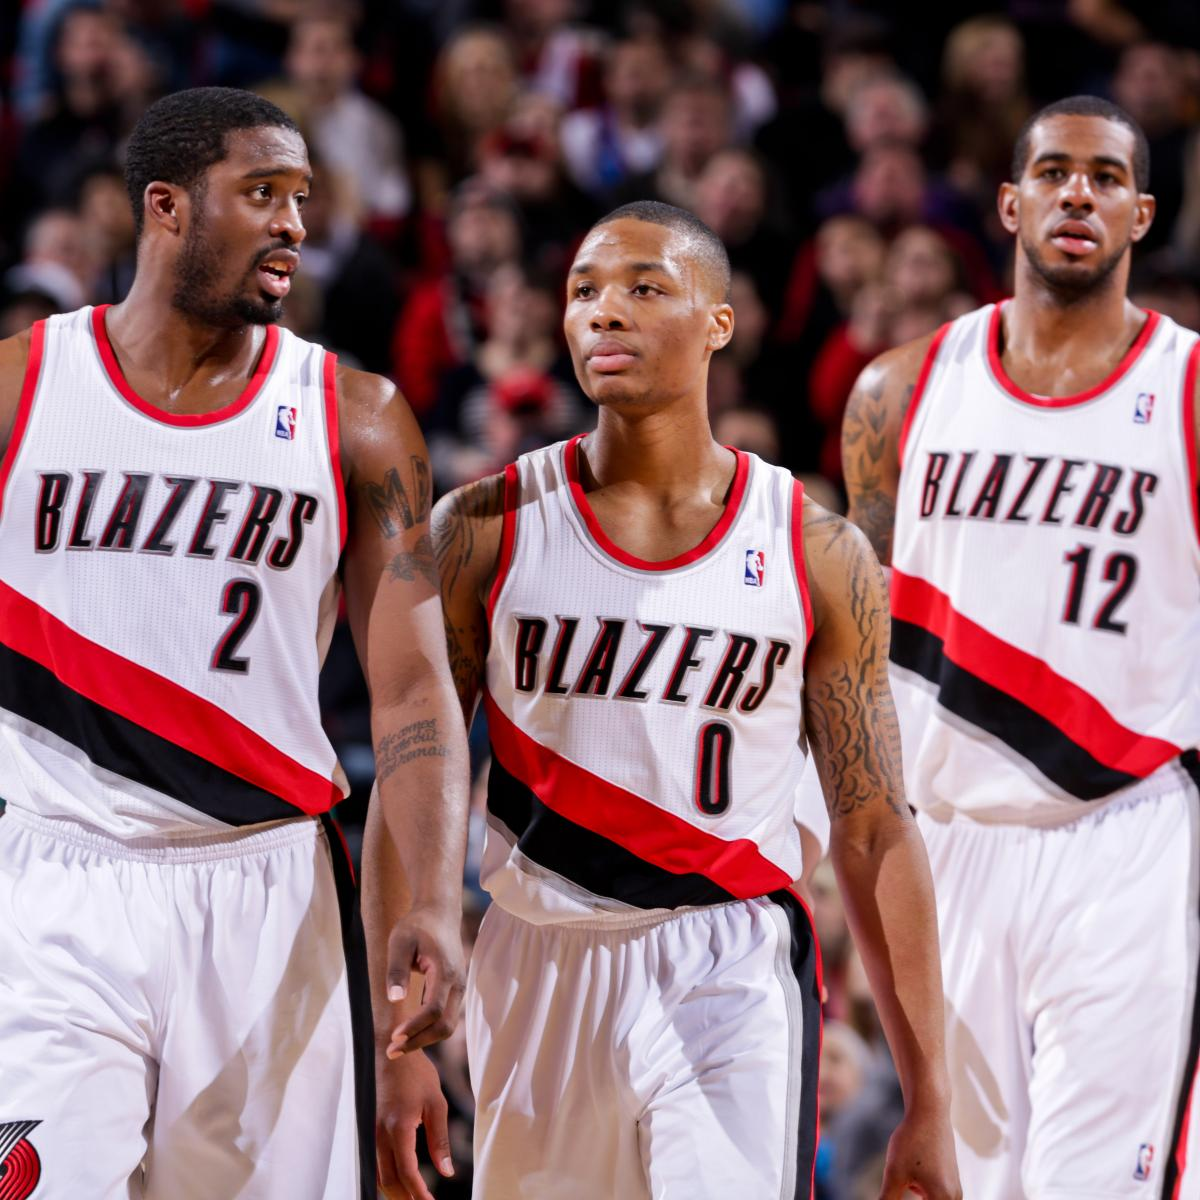 Blazers Team Roster: Year-End Grades For Every Key Portland Trail Blazers